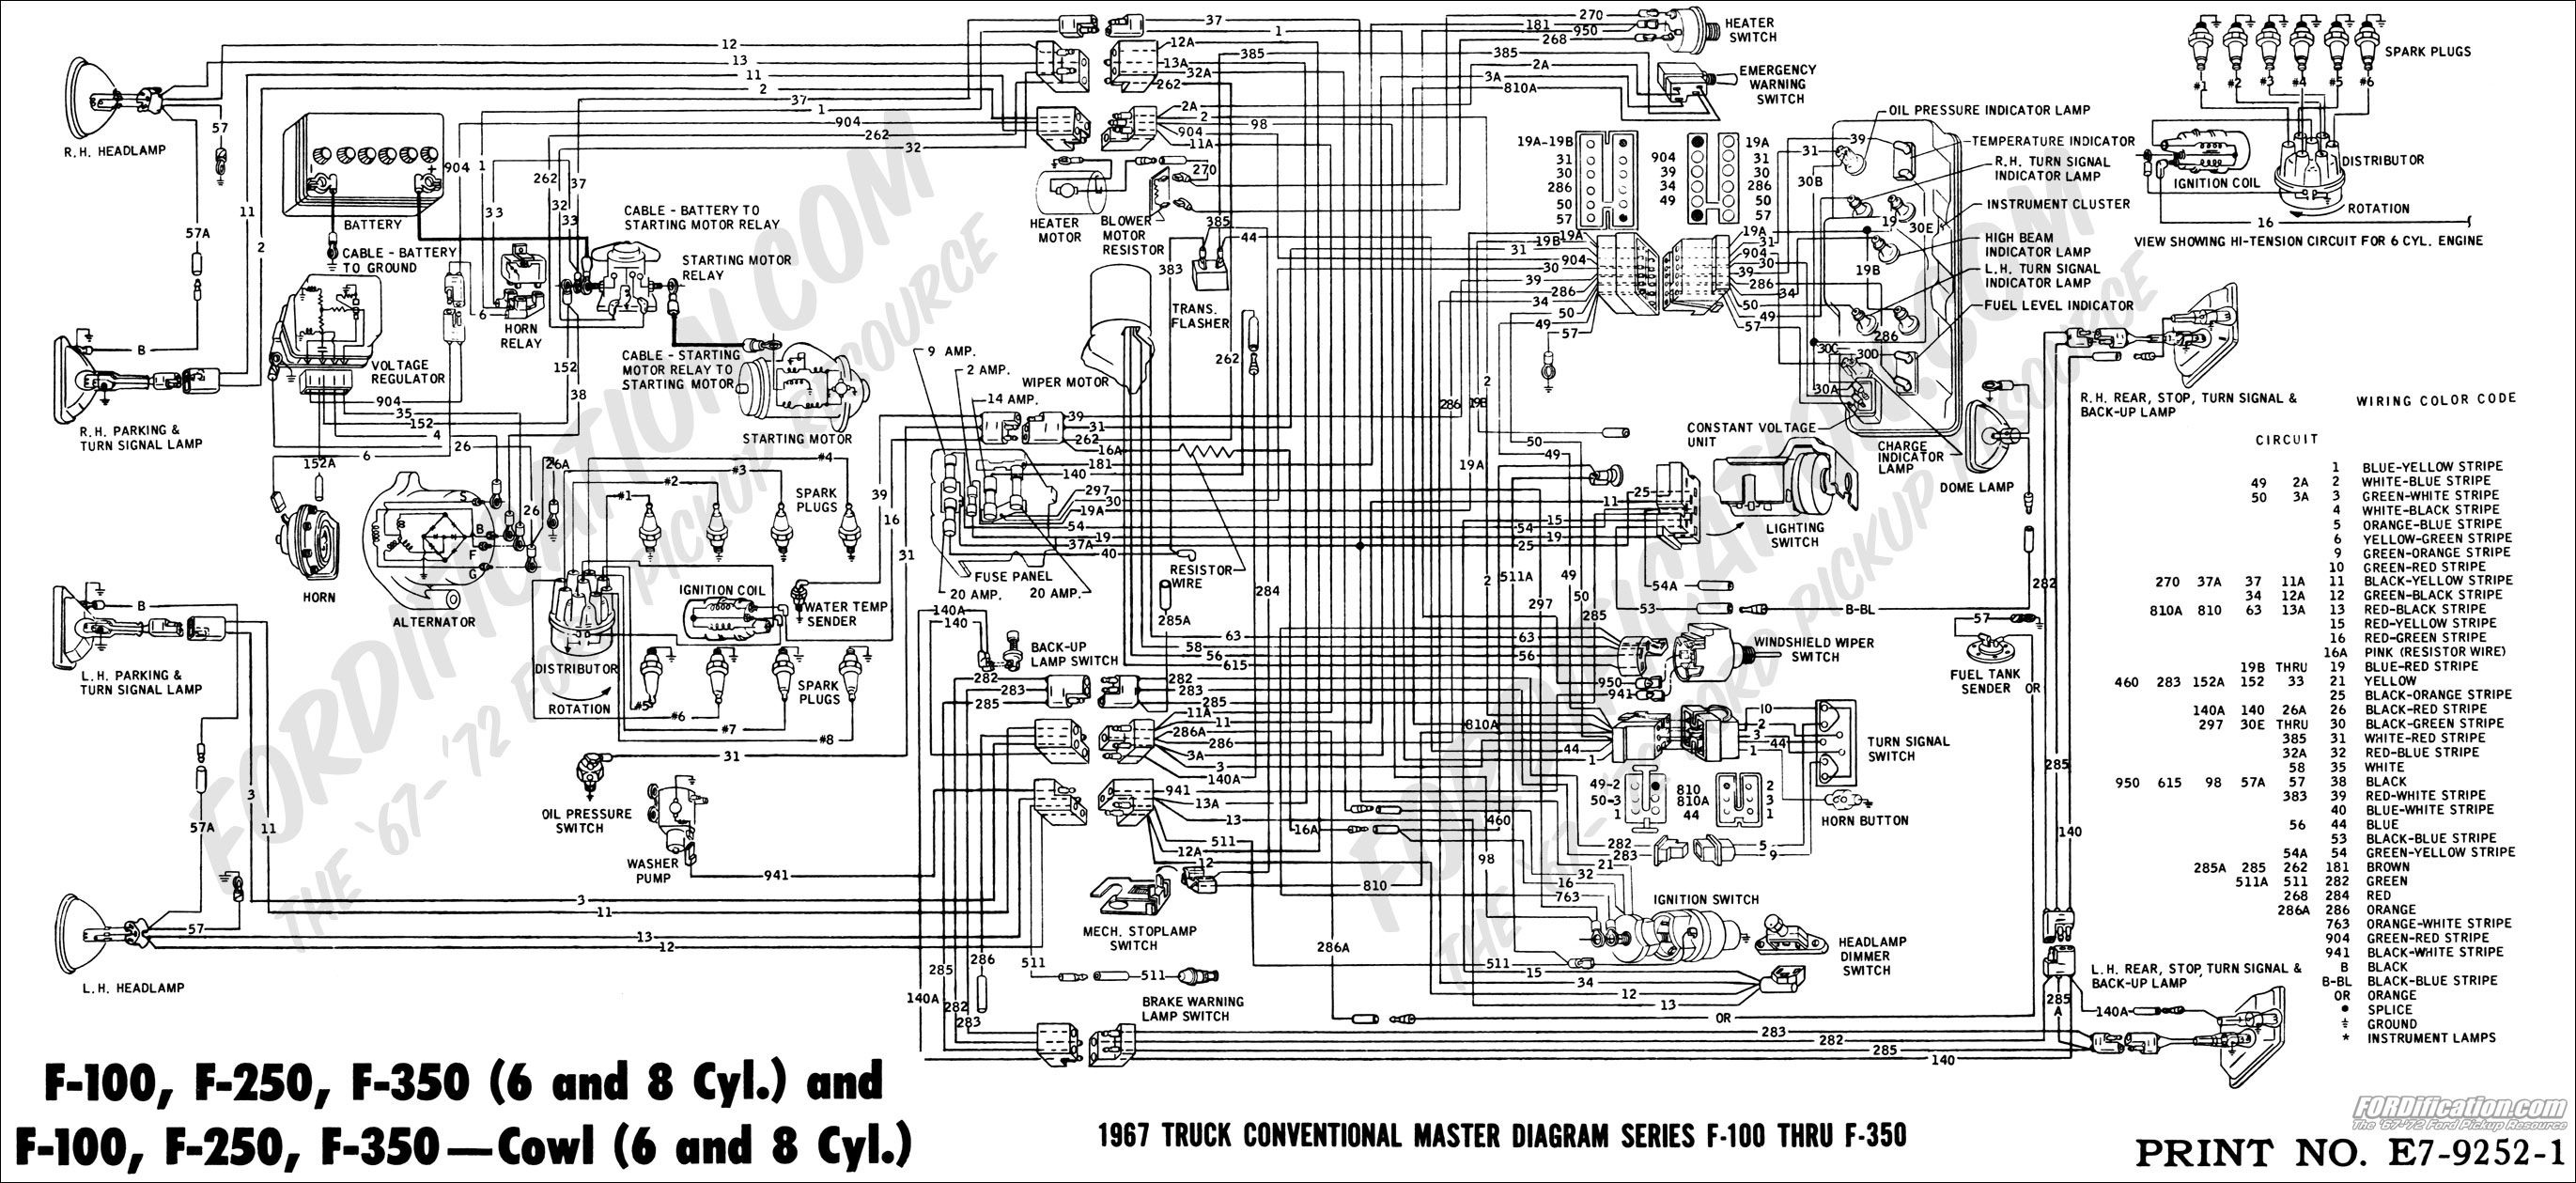 67masterdiagram wiring diagrams ford 2014 f150 readingrat net 1994 ford f150 headlight wiring diagram at aneh.co